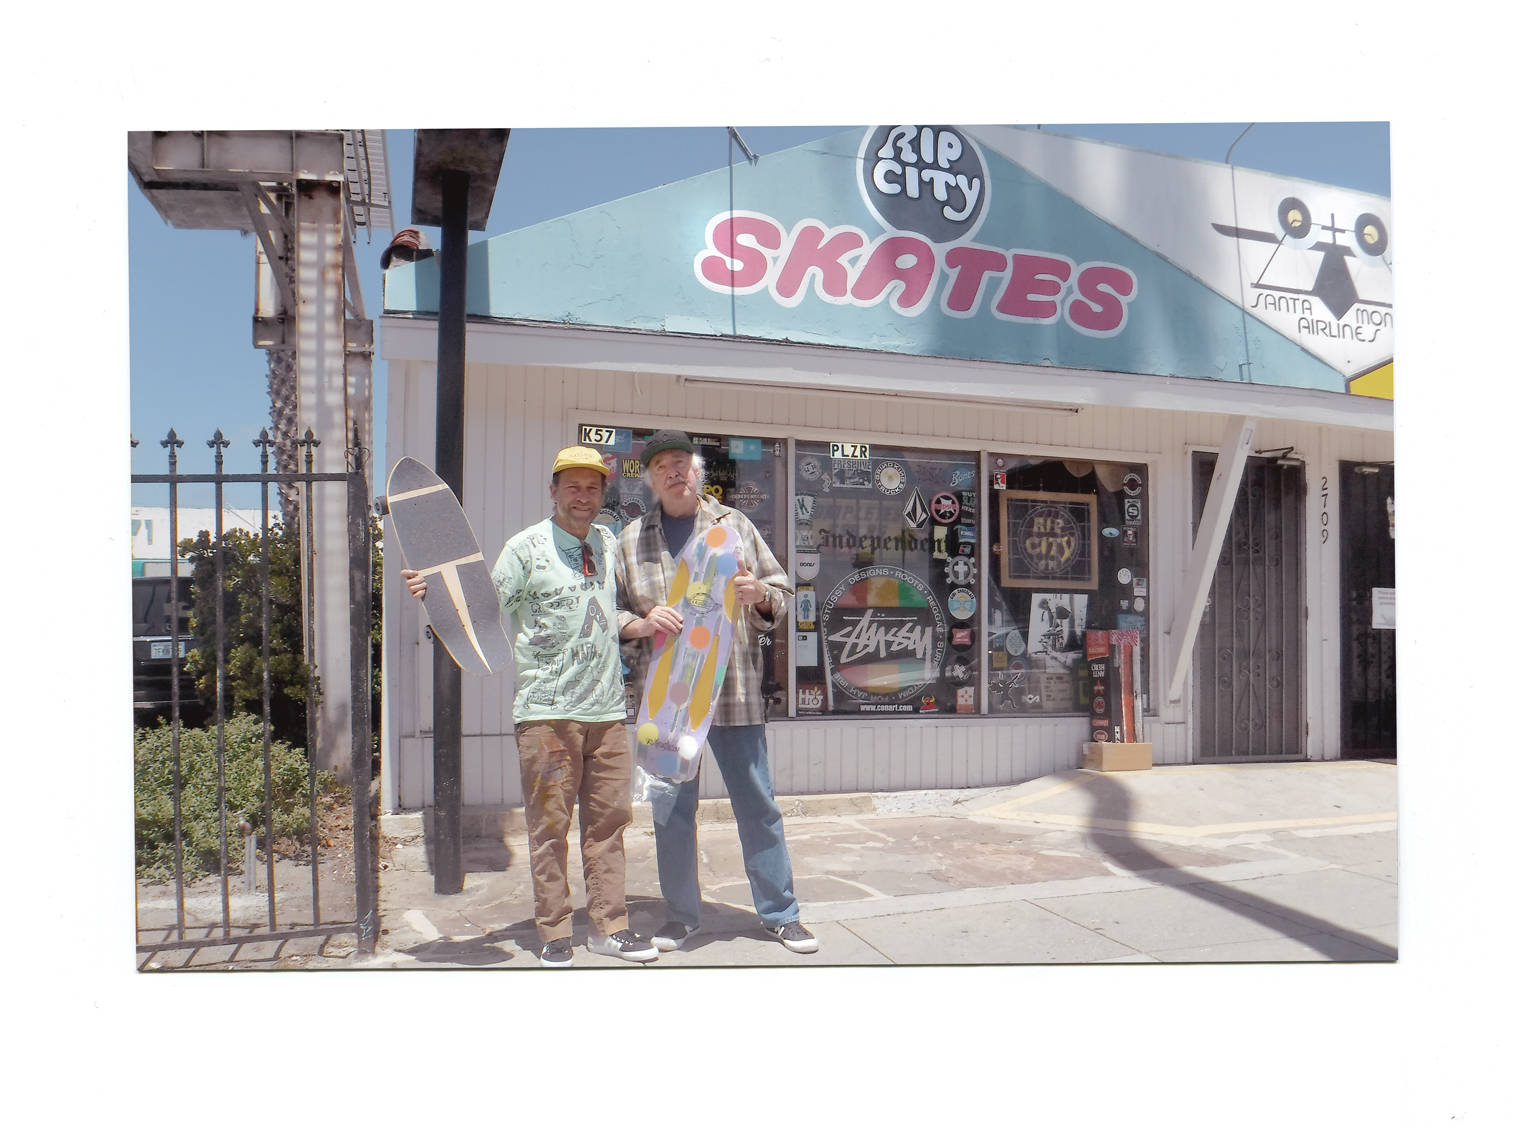 RIP CITY SKATES: A SANTA MONICA INSTITUTION TURNS 40